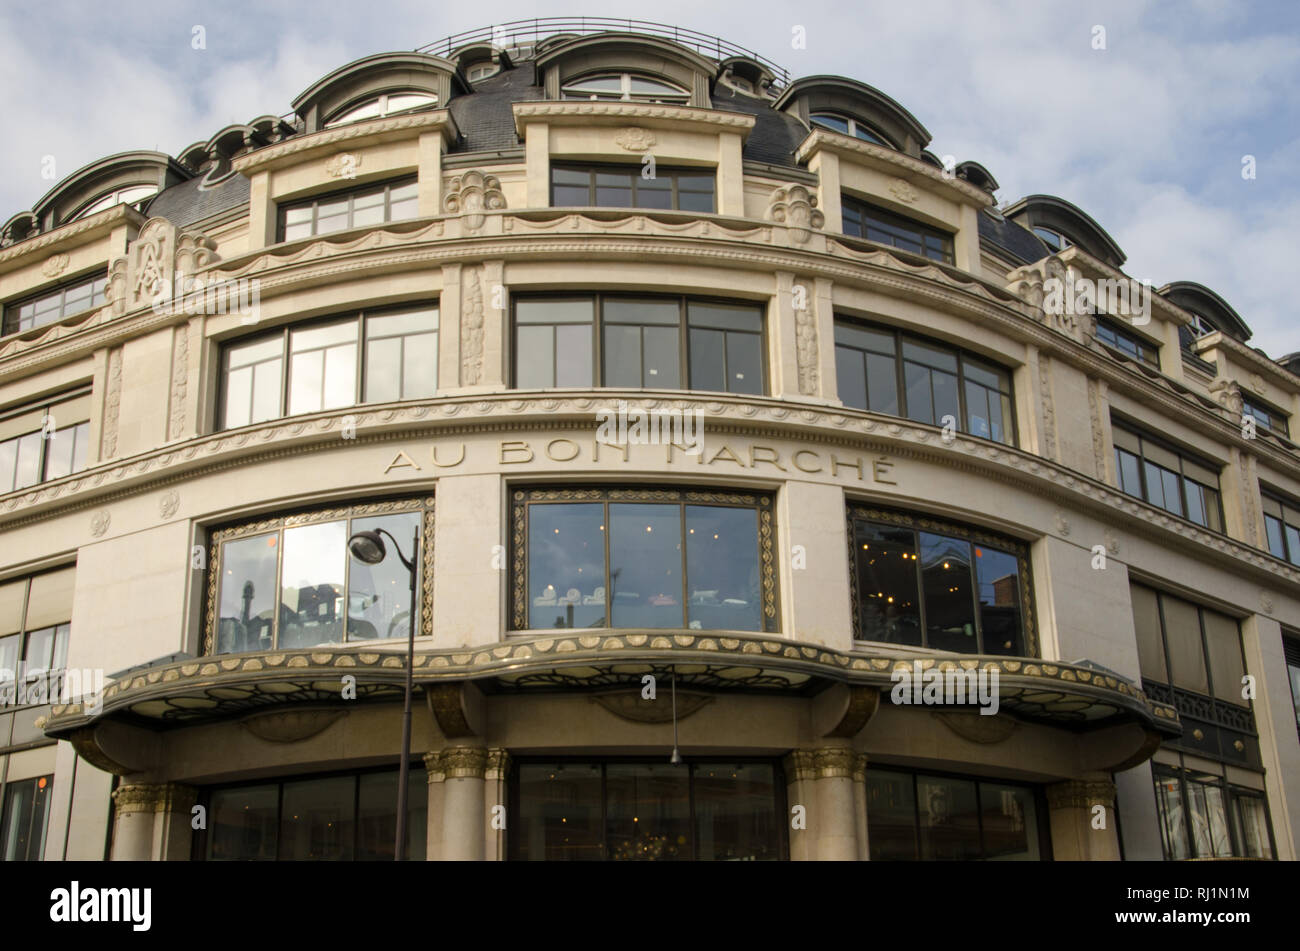 Le Bon Marché facade, at the ground floor there is the Grand Epicerie. Paris, January 29th, 2019 - Stock Image